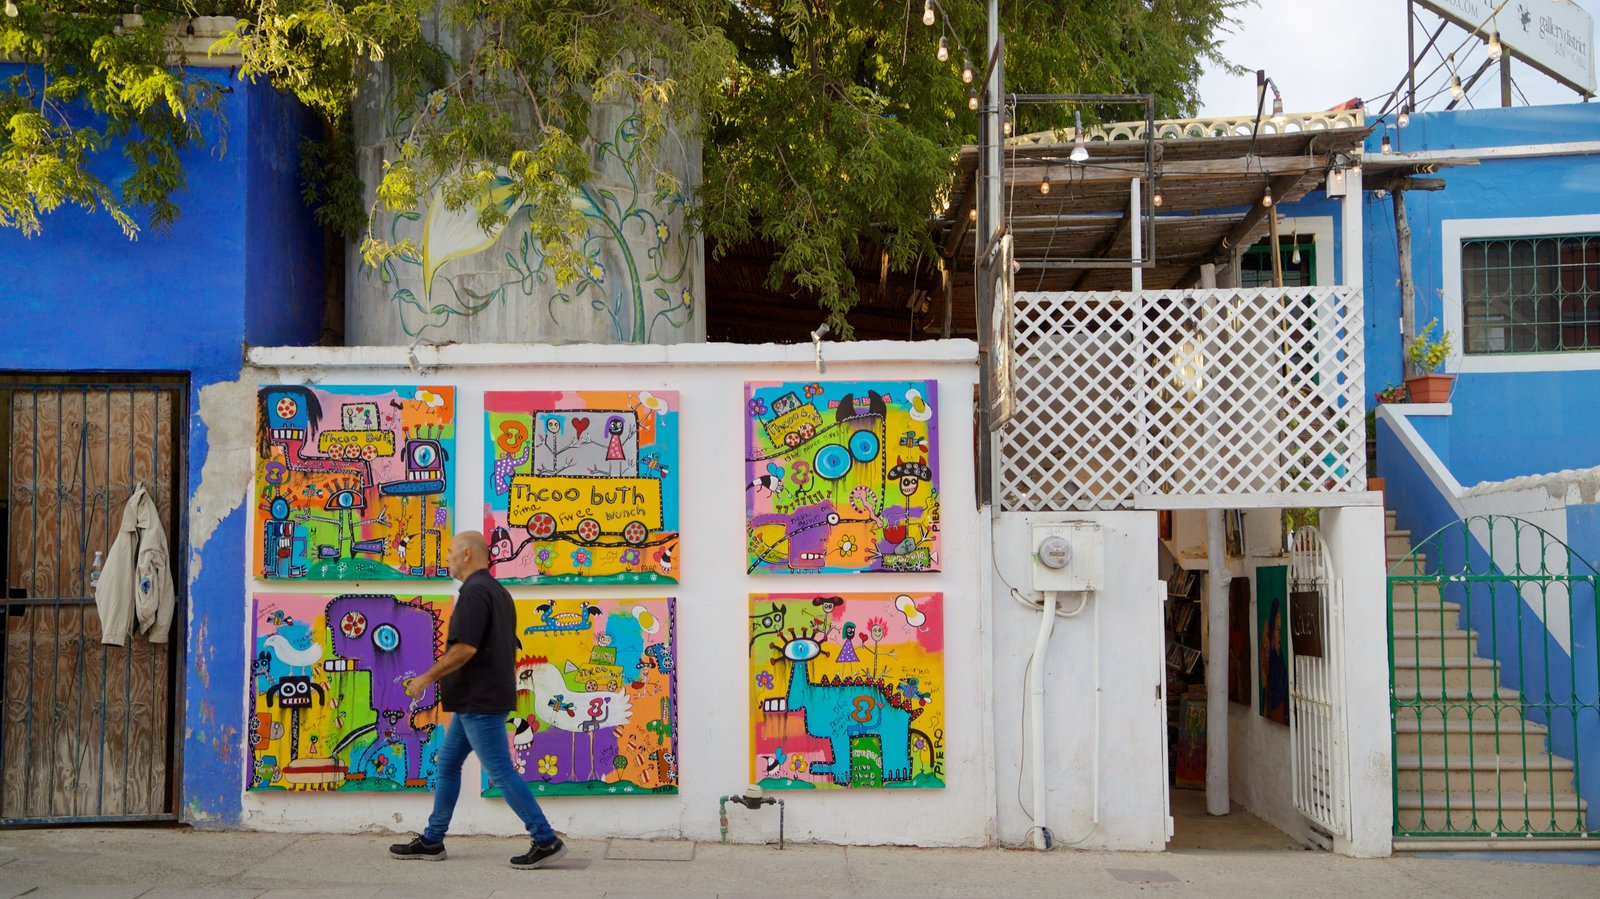 San Jose del Cabo Art District showing street scenes and outdoor art as well as an individual male